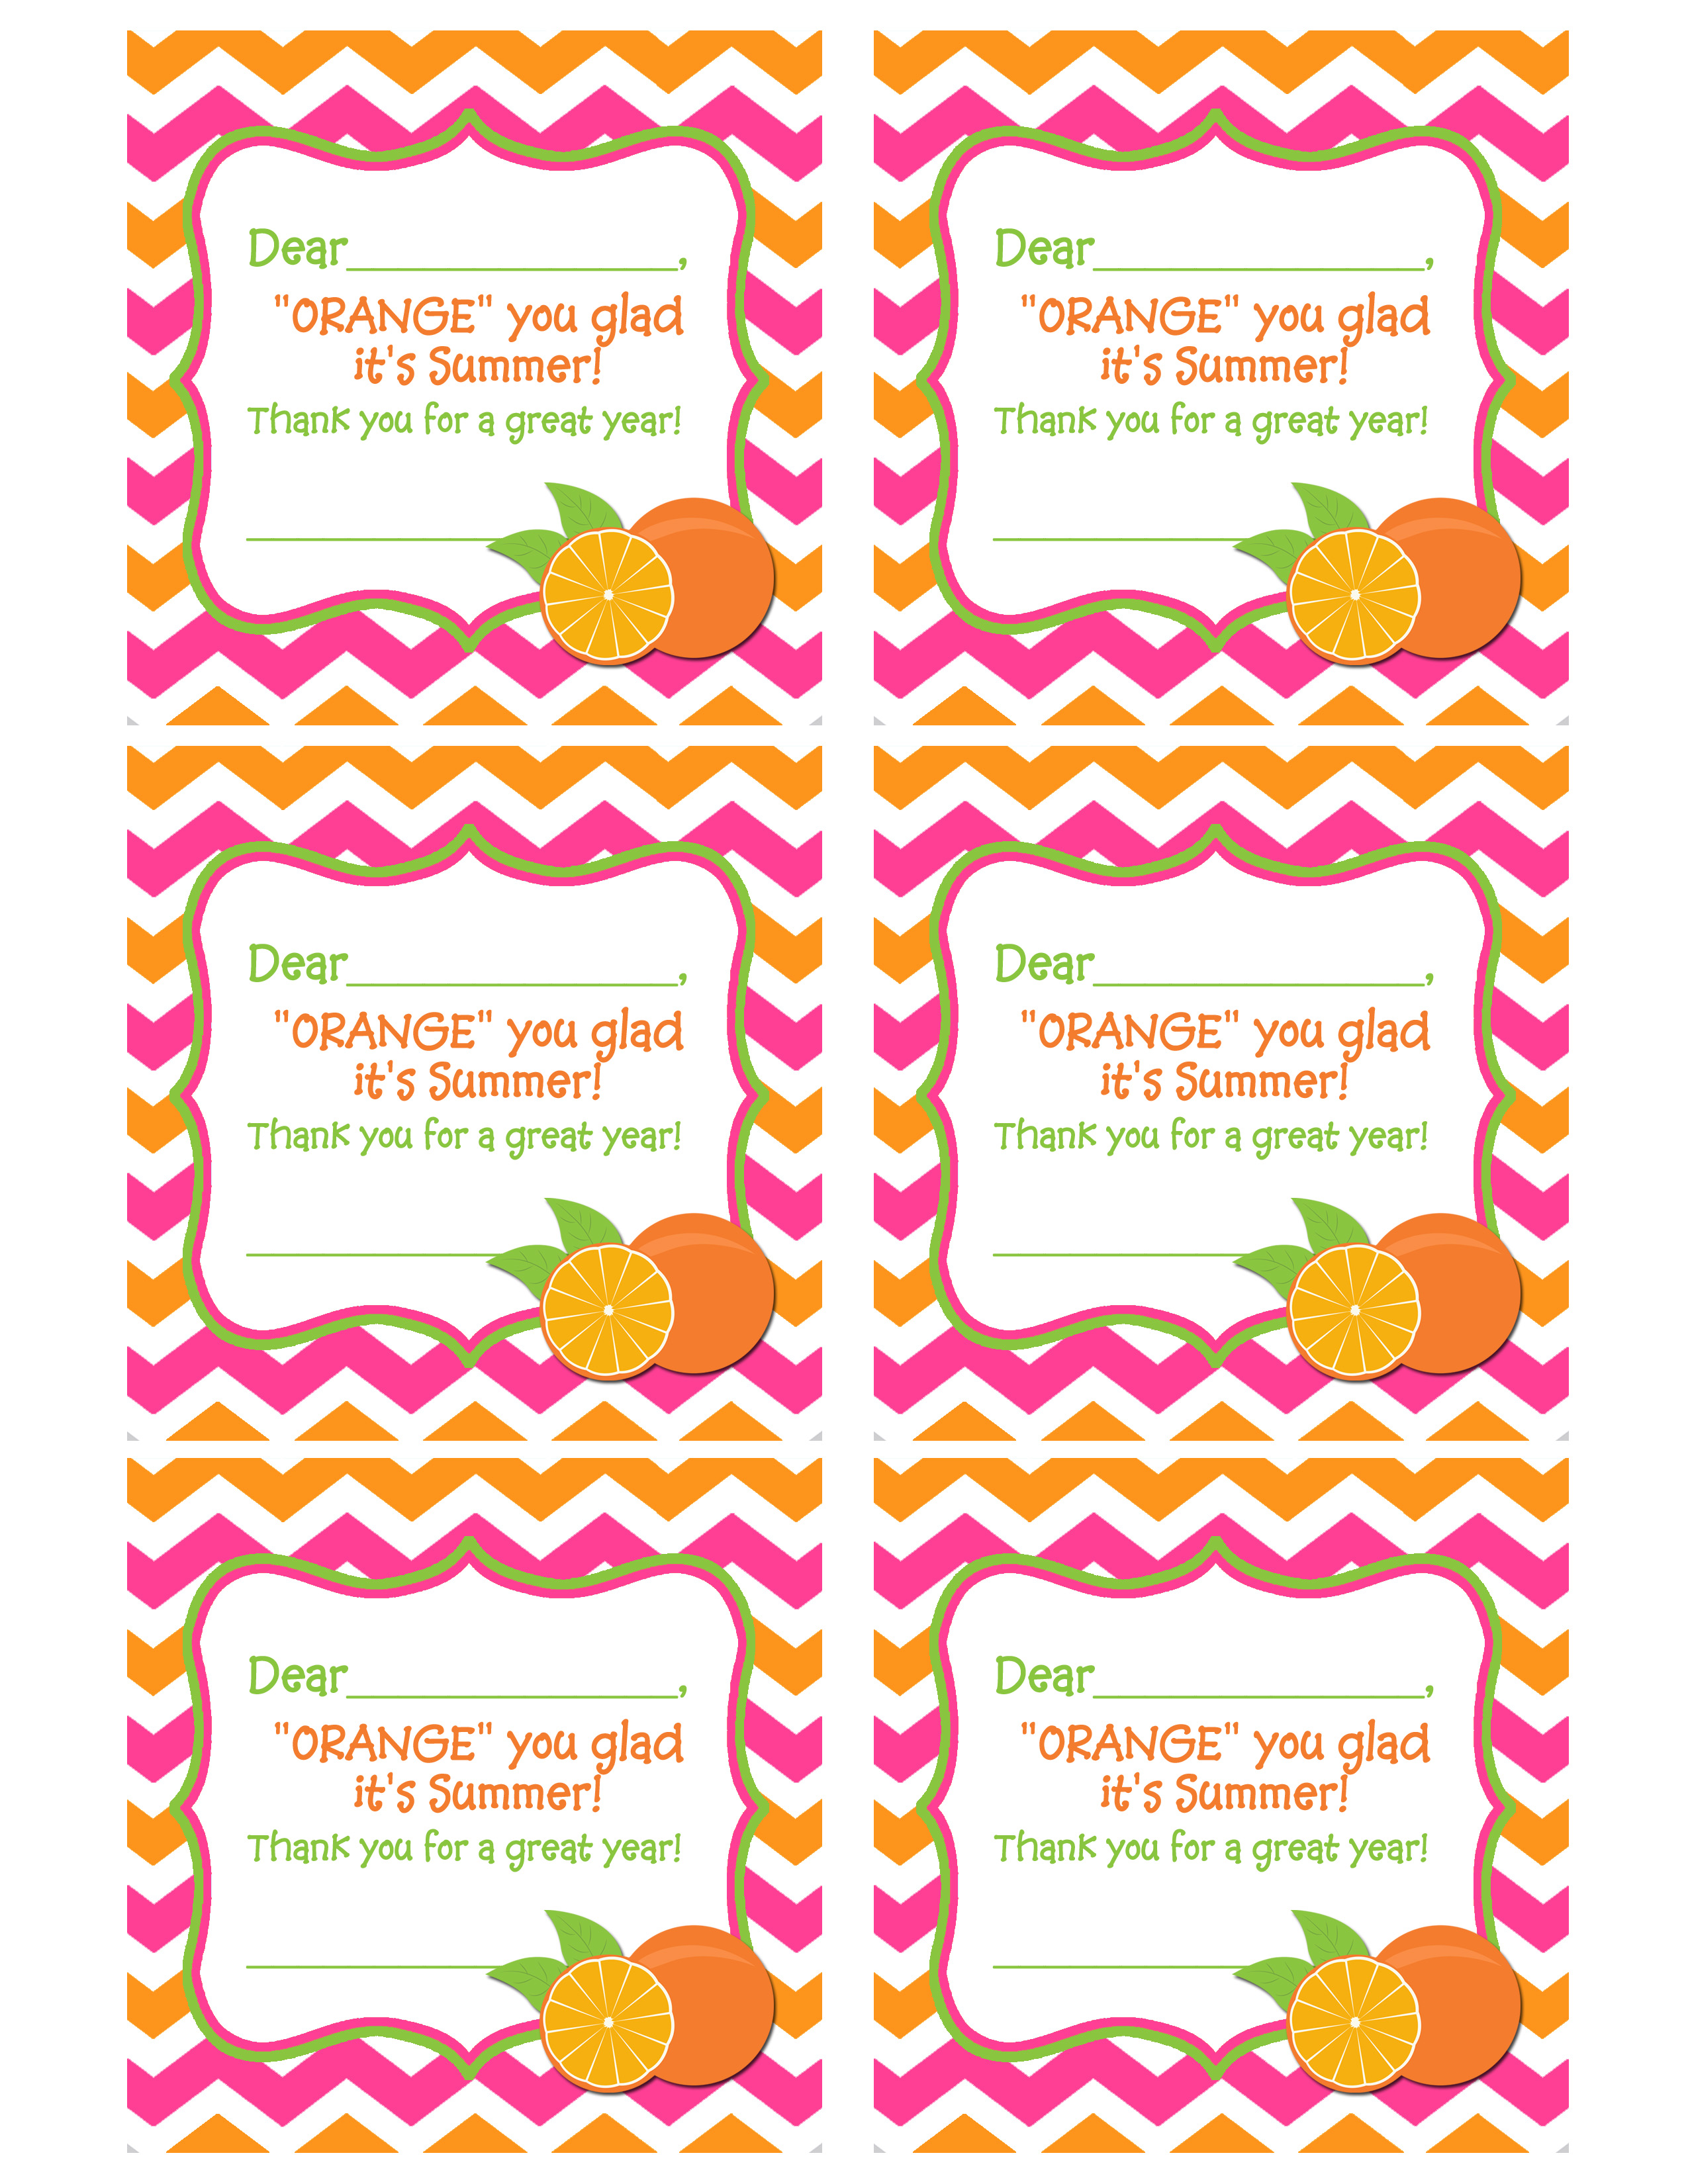 End of year teacher gift idea printable giveaway that party chick orange pink and orange chevron tag for teacheredited 1 negle Gallery